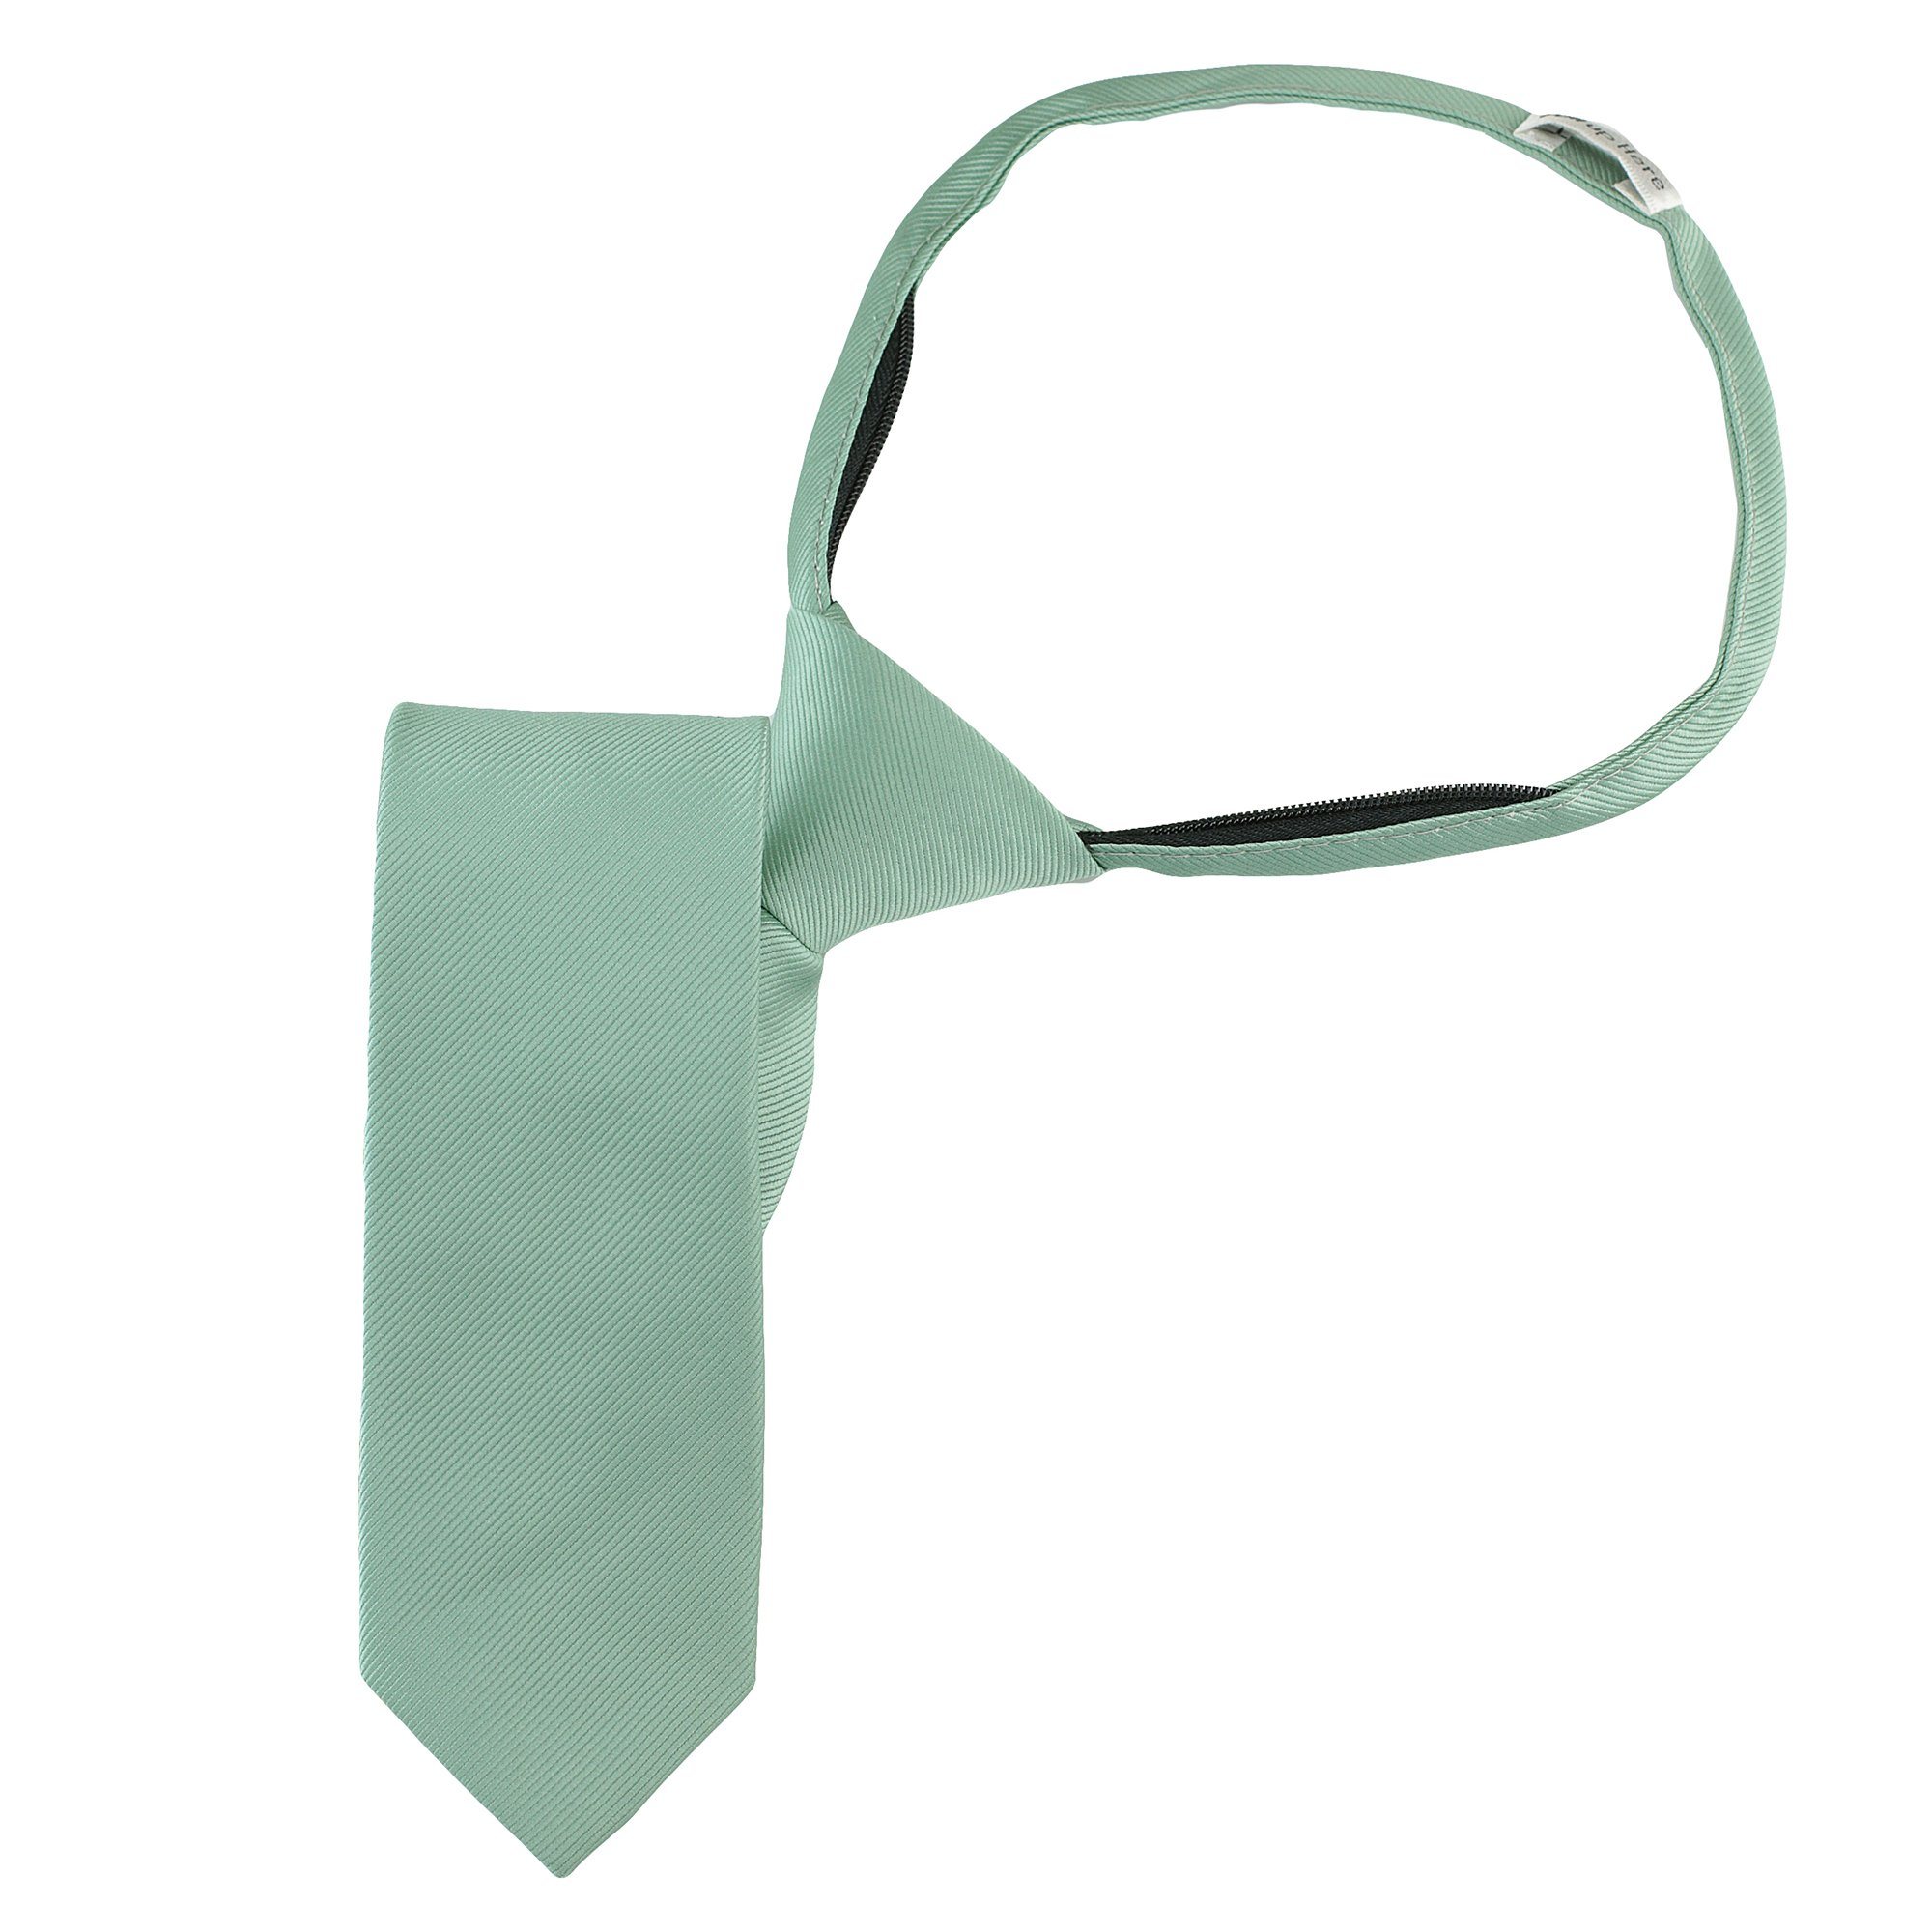 Handmade 14'' Zipper Ties For Boys Woven Boys Sea Foam Green Ties: For Kids Wedding Graduation by Luther Pike Seattle (Image #2)